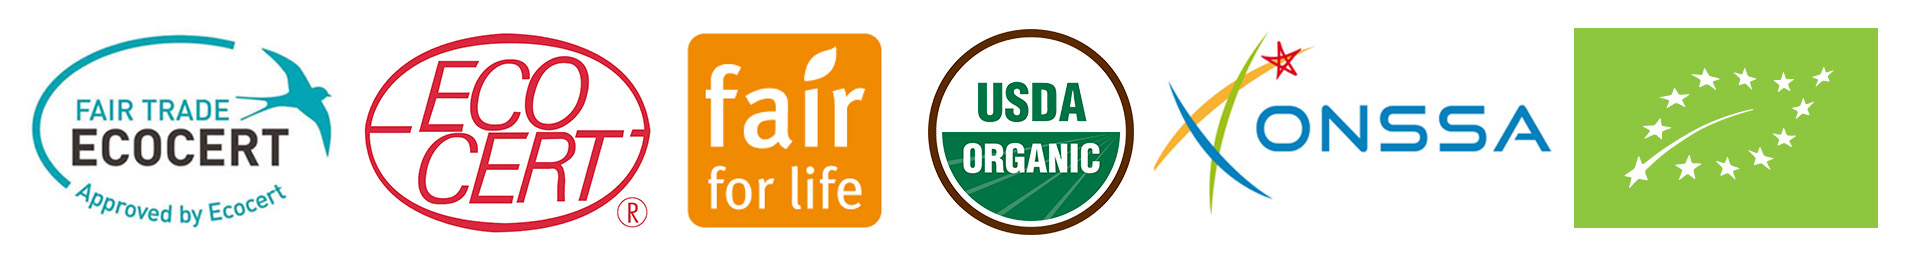 Argane Aouzac has fair trade and organic certification